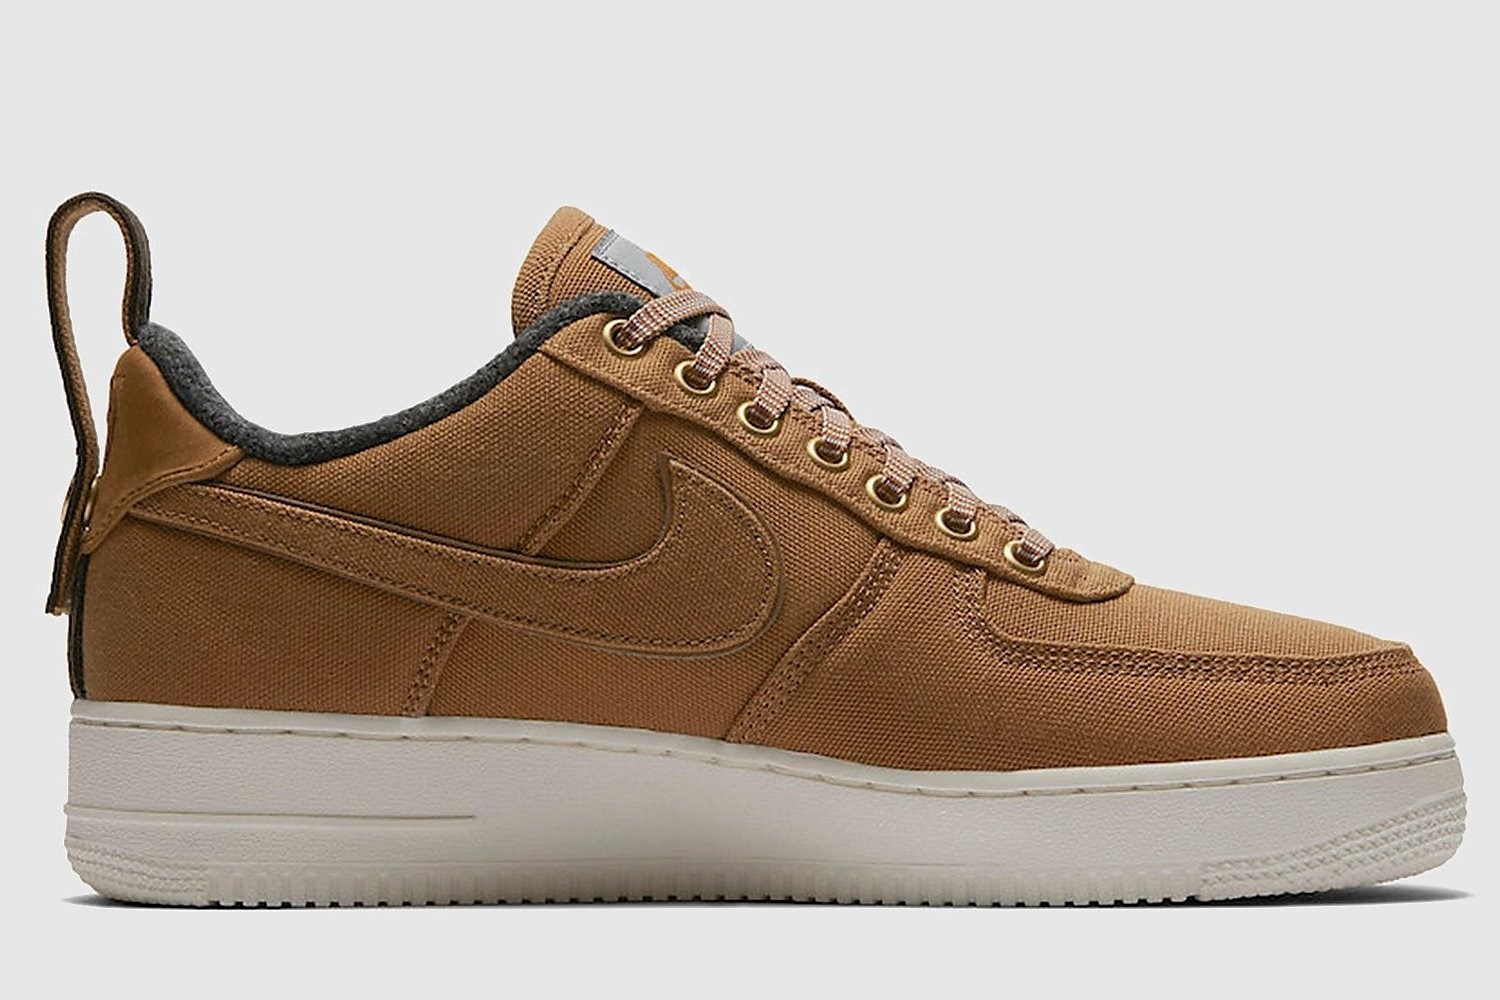 nike-air force 1-heren-bruin-av4113-200-bruine-sneakers-heren